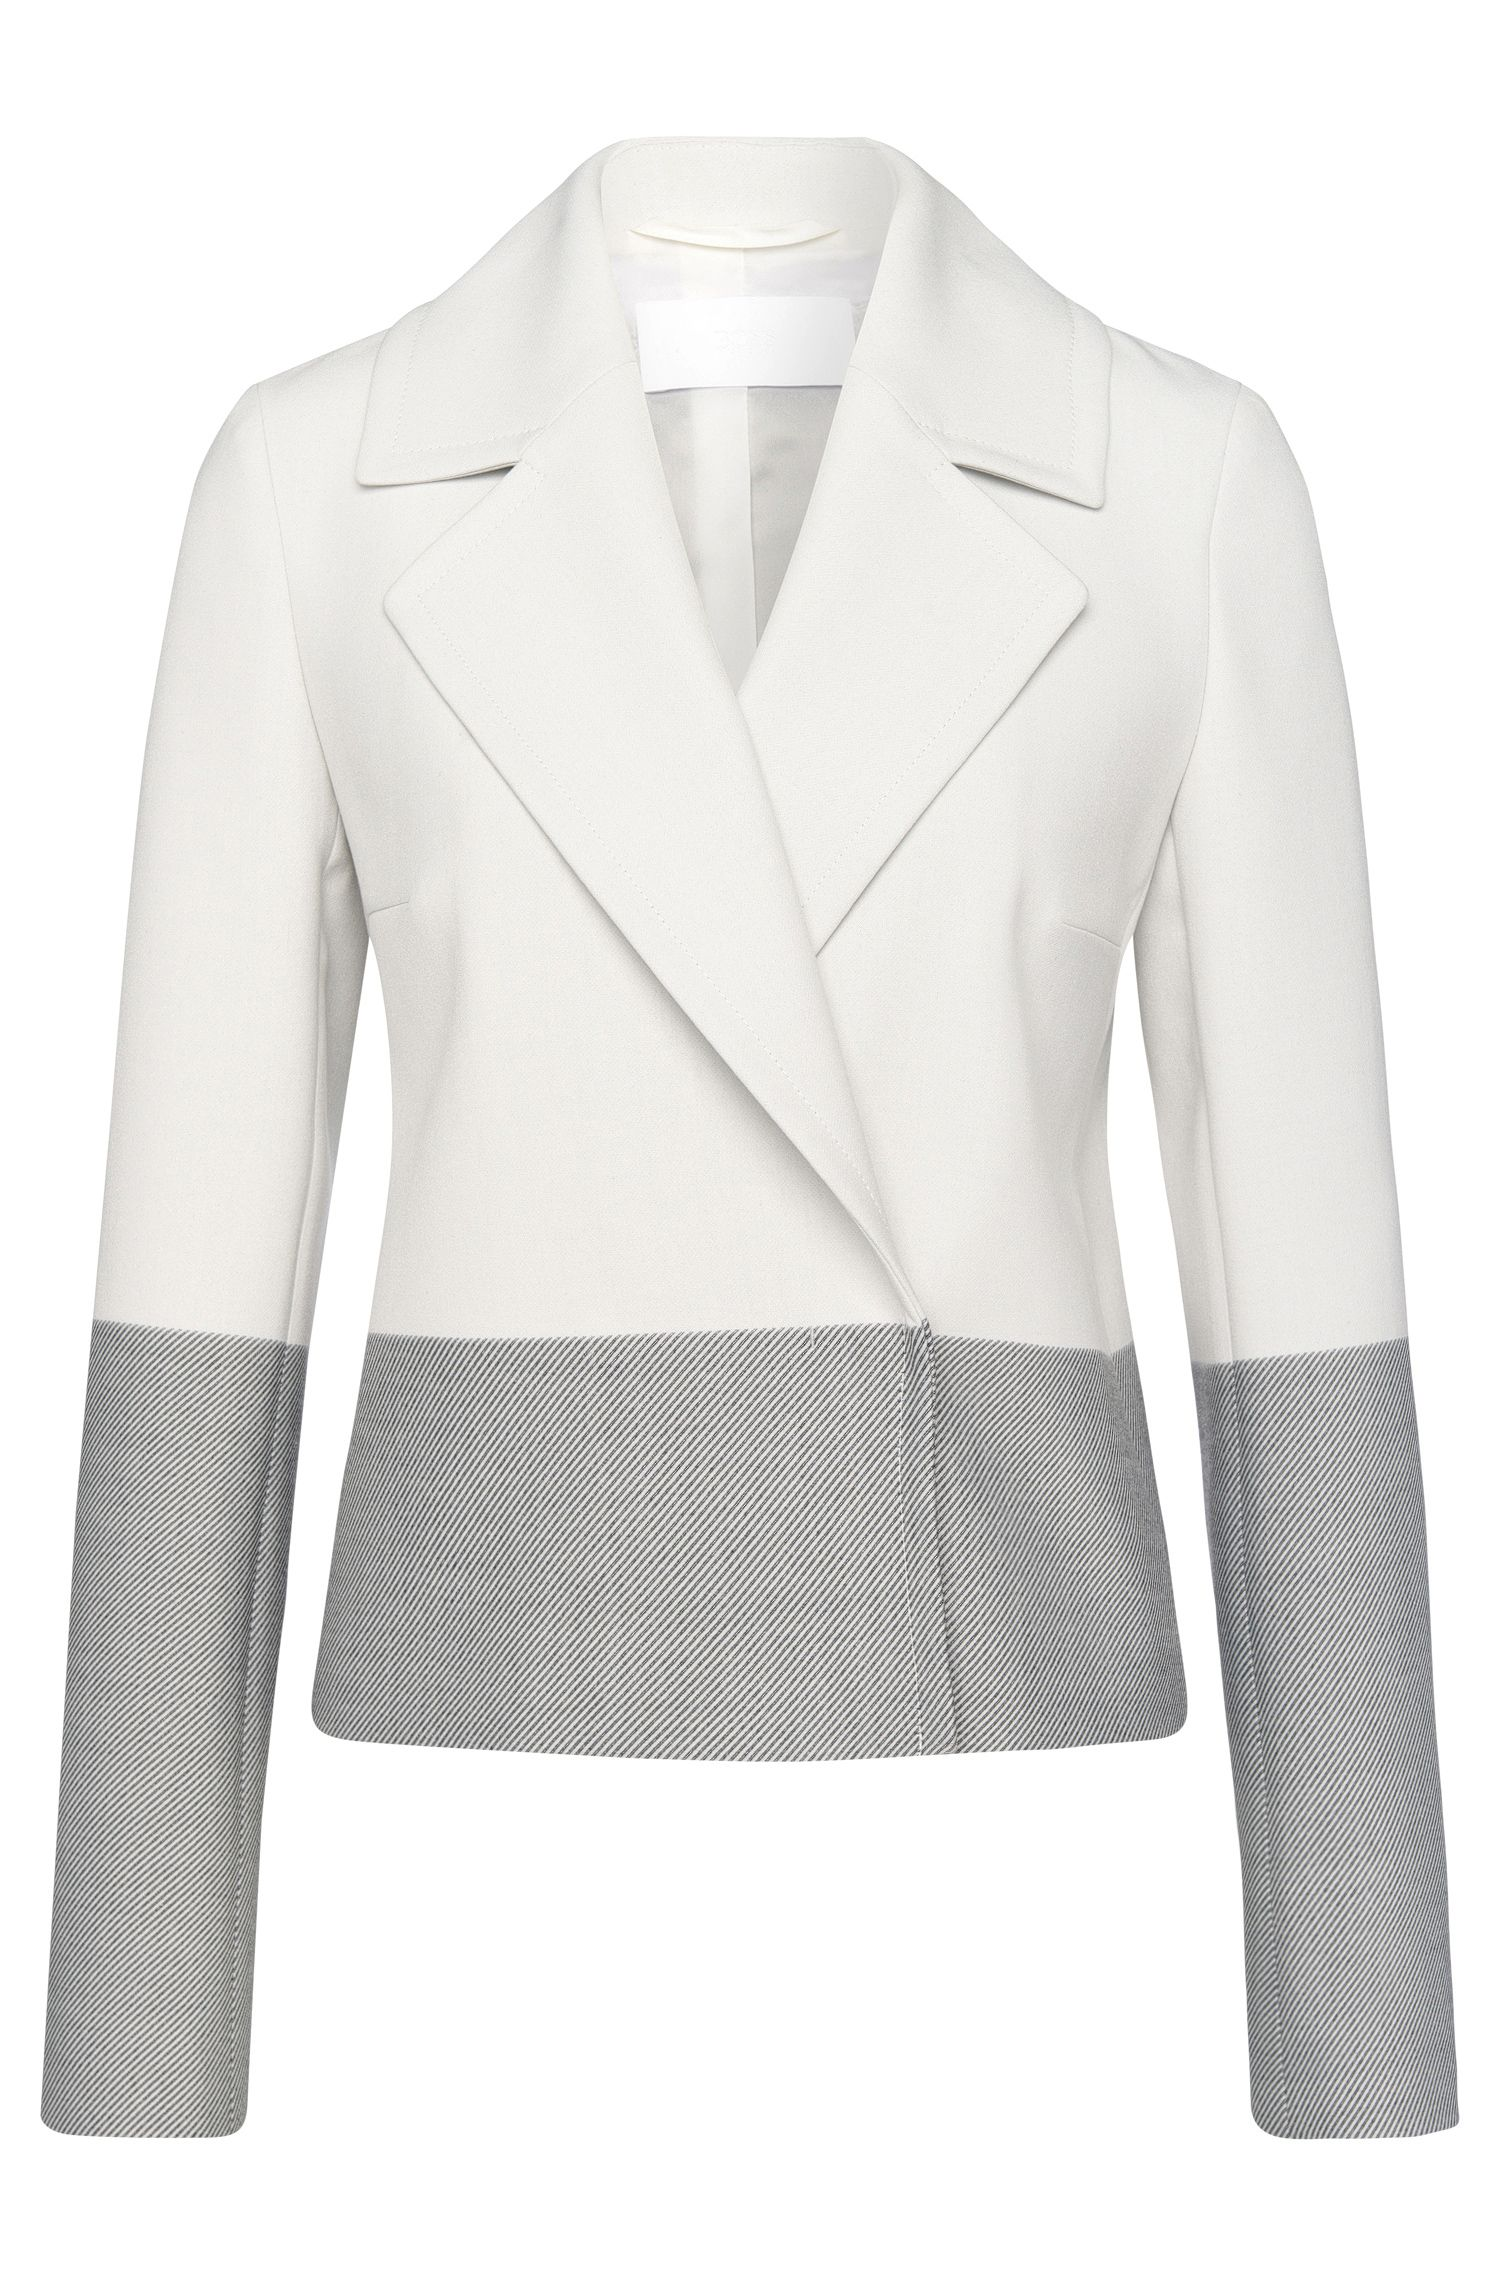 Colorblocked Stretch Viscose Blend Blazer | Kerma